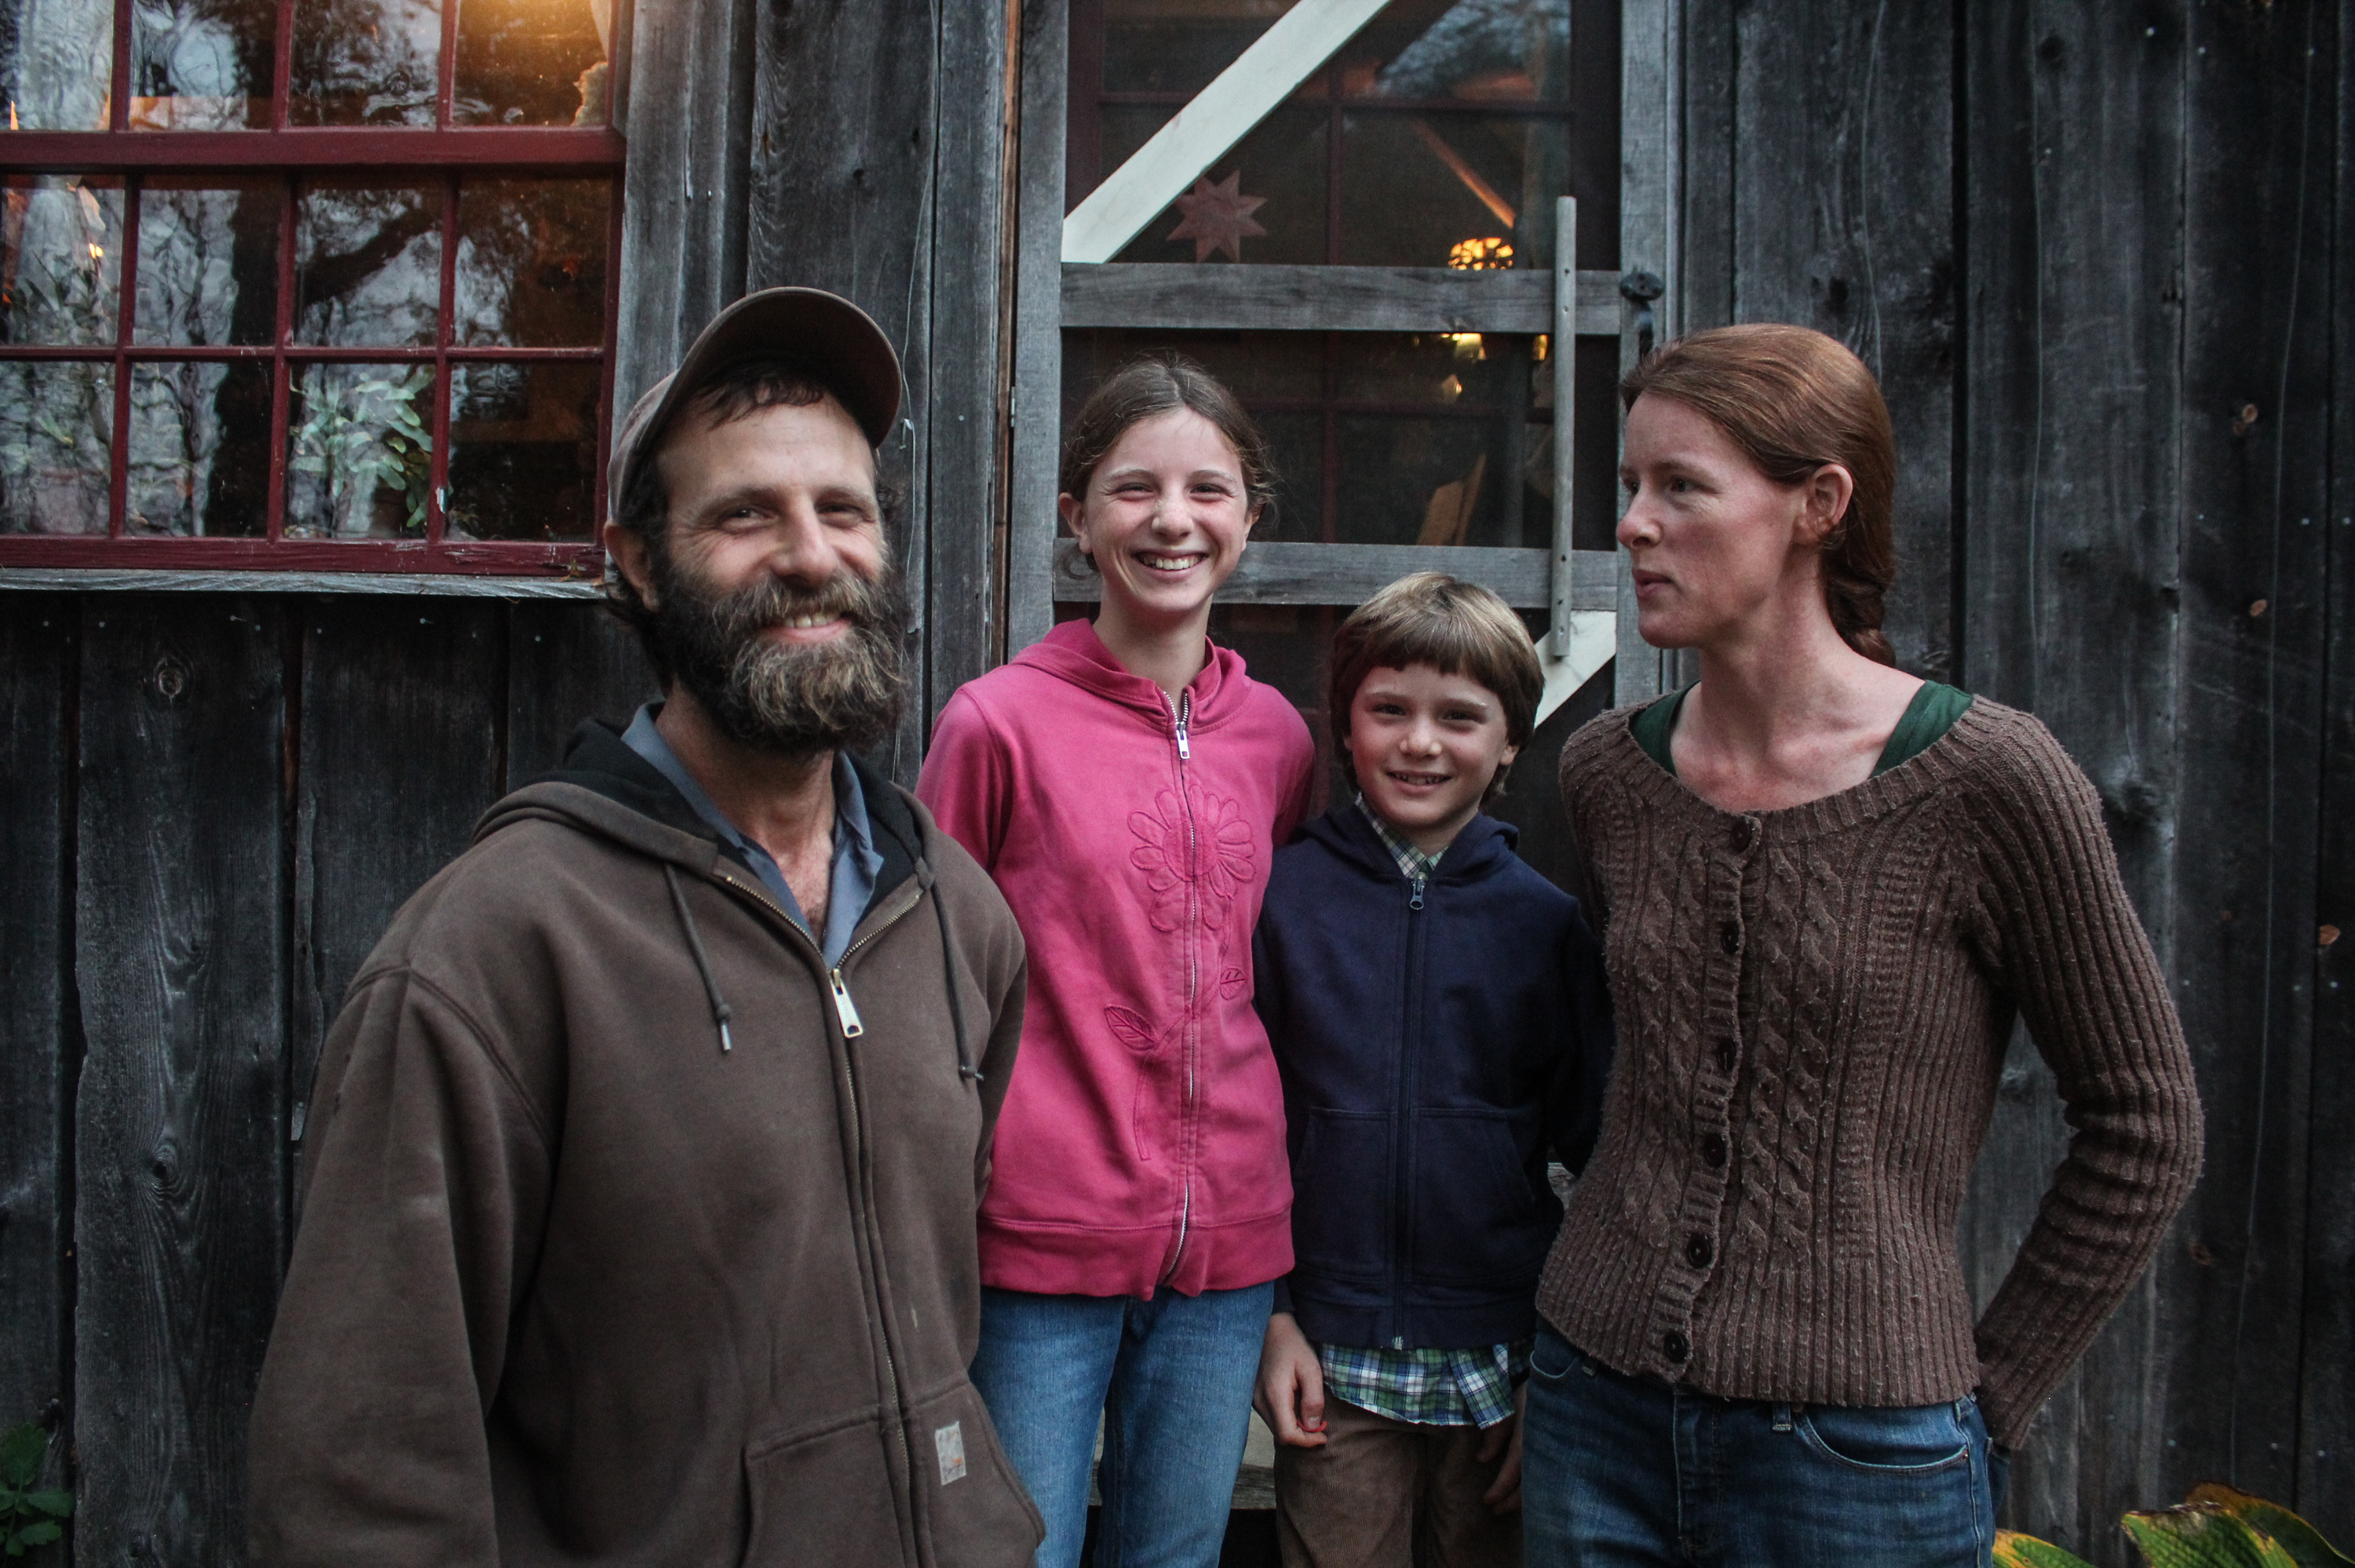 By Returning To Farming's Roots, He Found His American Dream